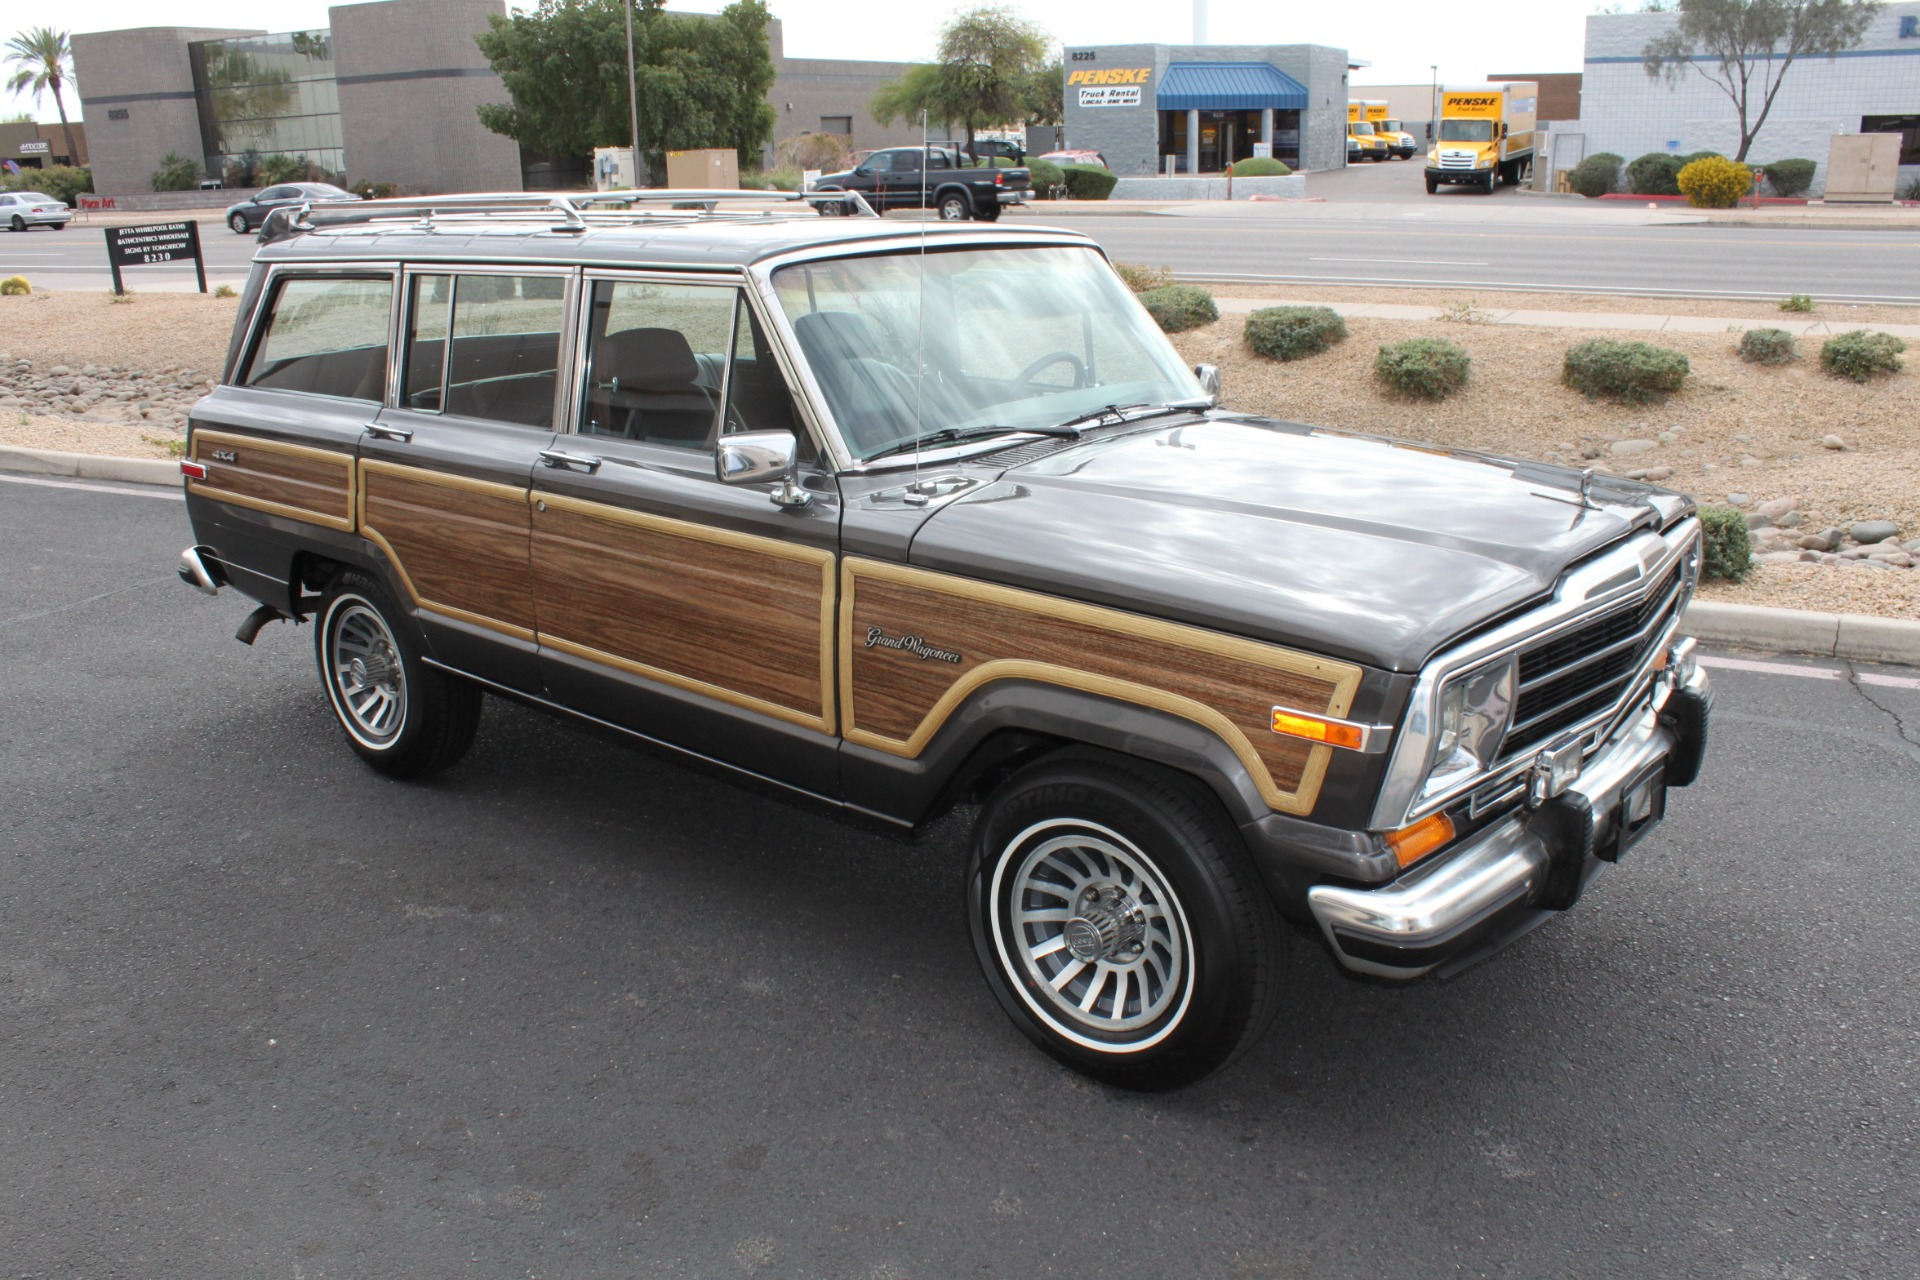 Used-1989-Jeep-Grand-Wagoneer-4X4-Toyota